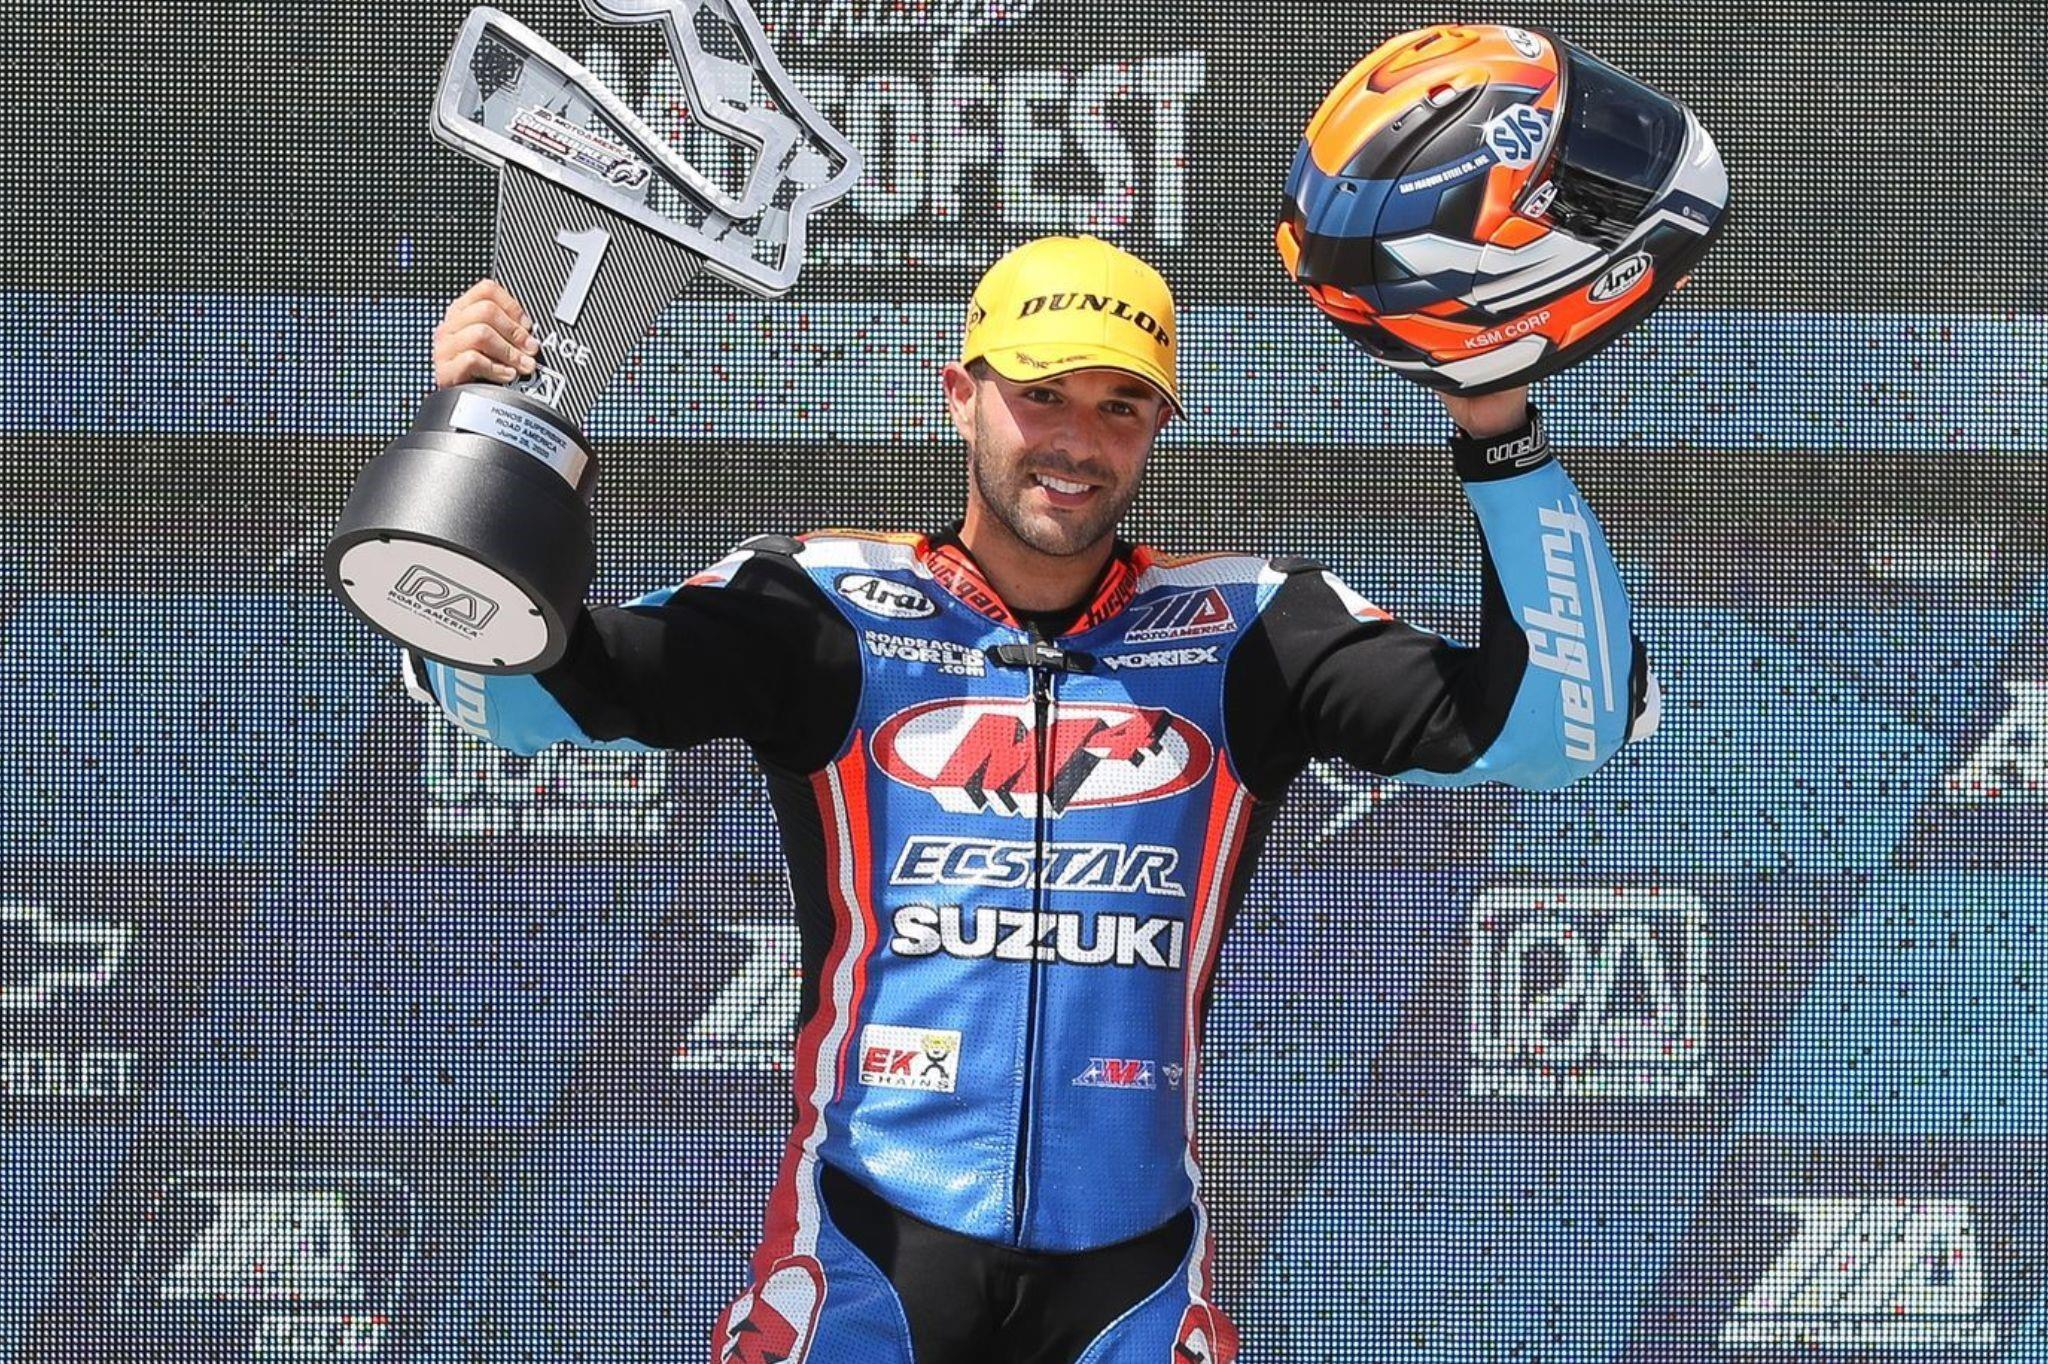 Boby Fong And M4 ECSTAR Suzuki Win At Road America SBK